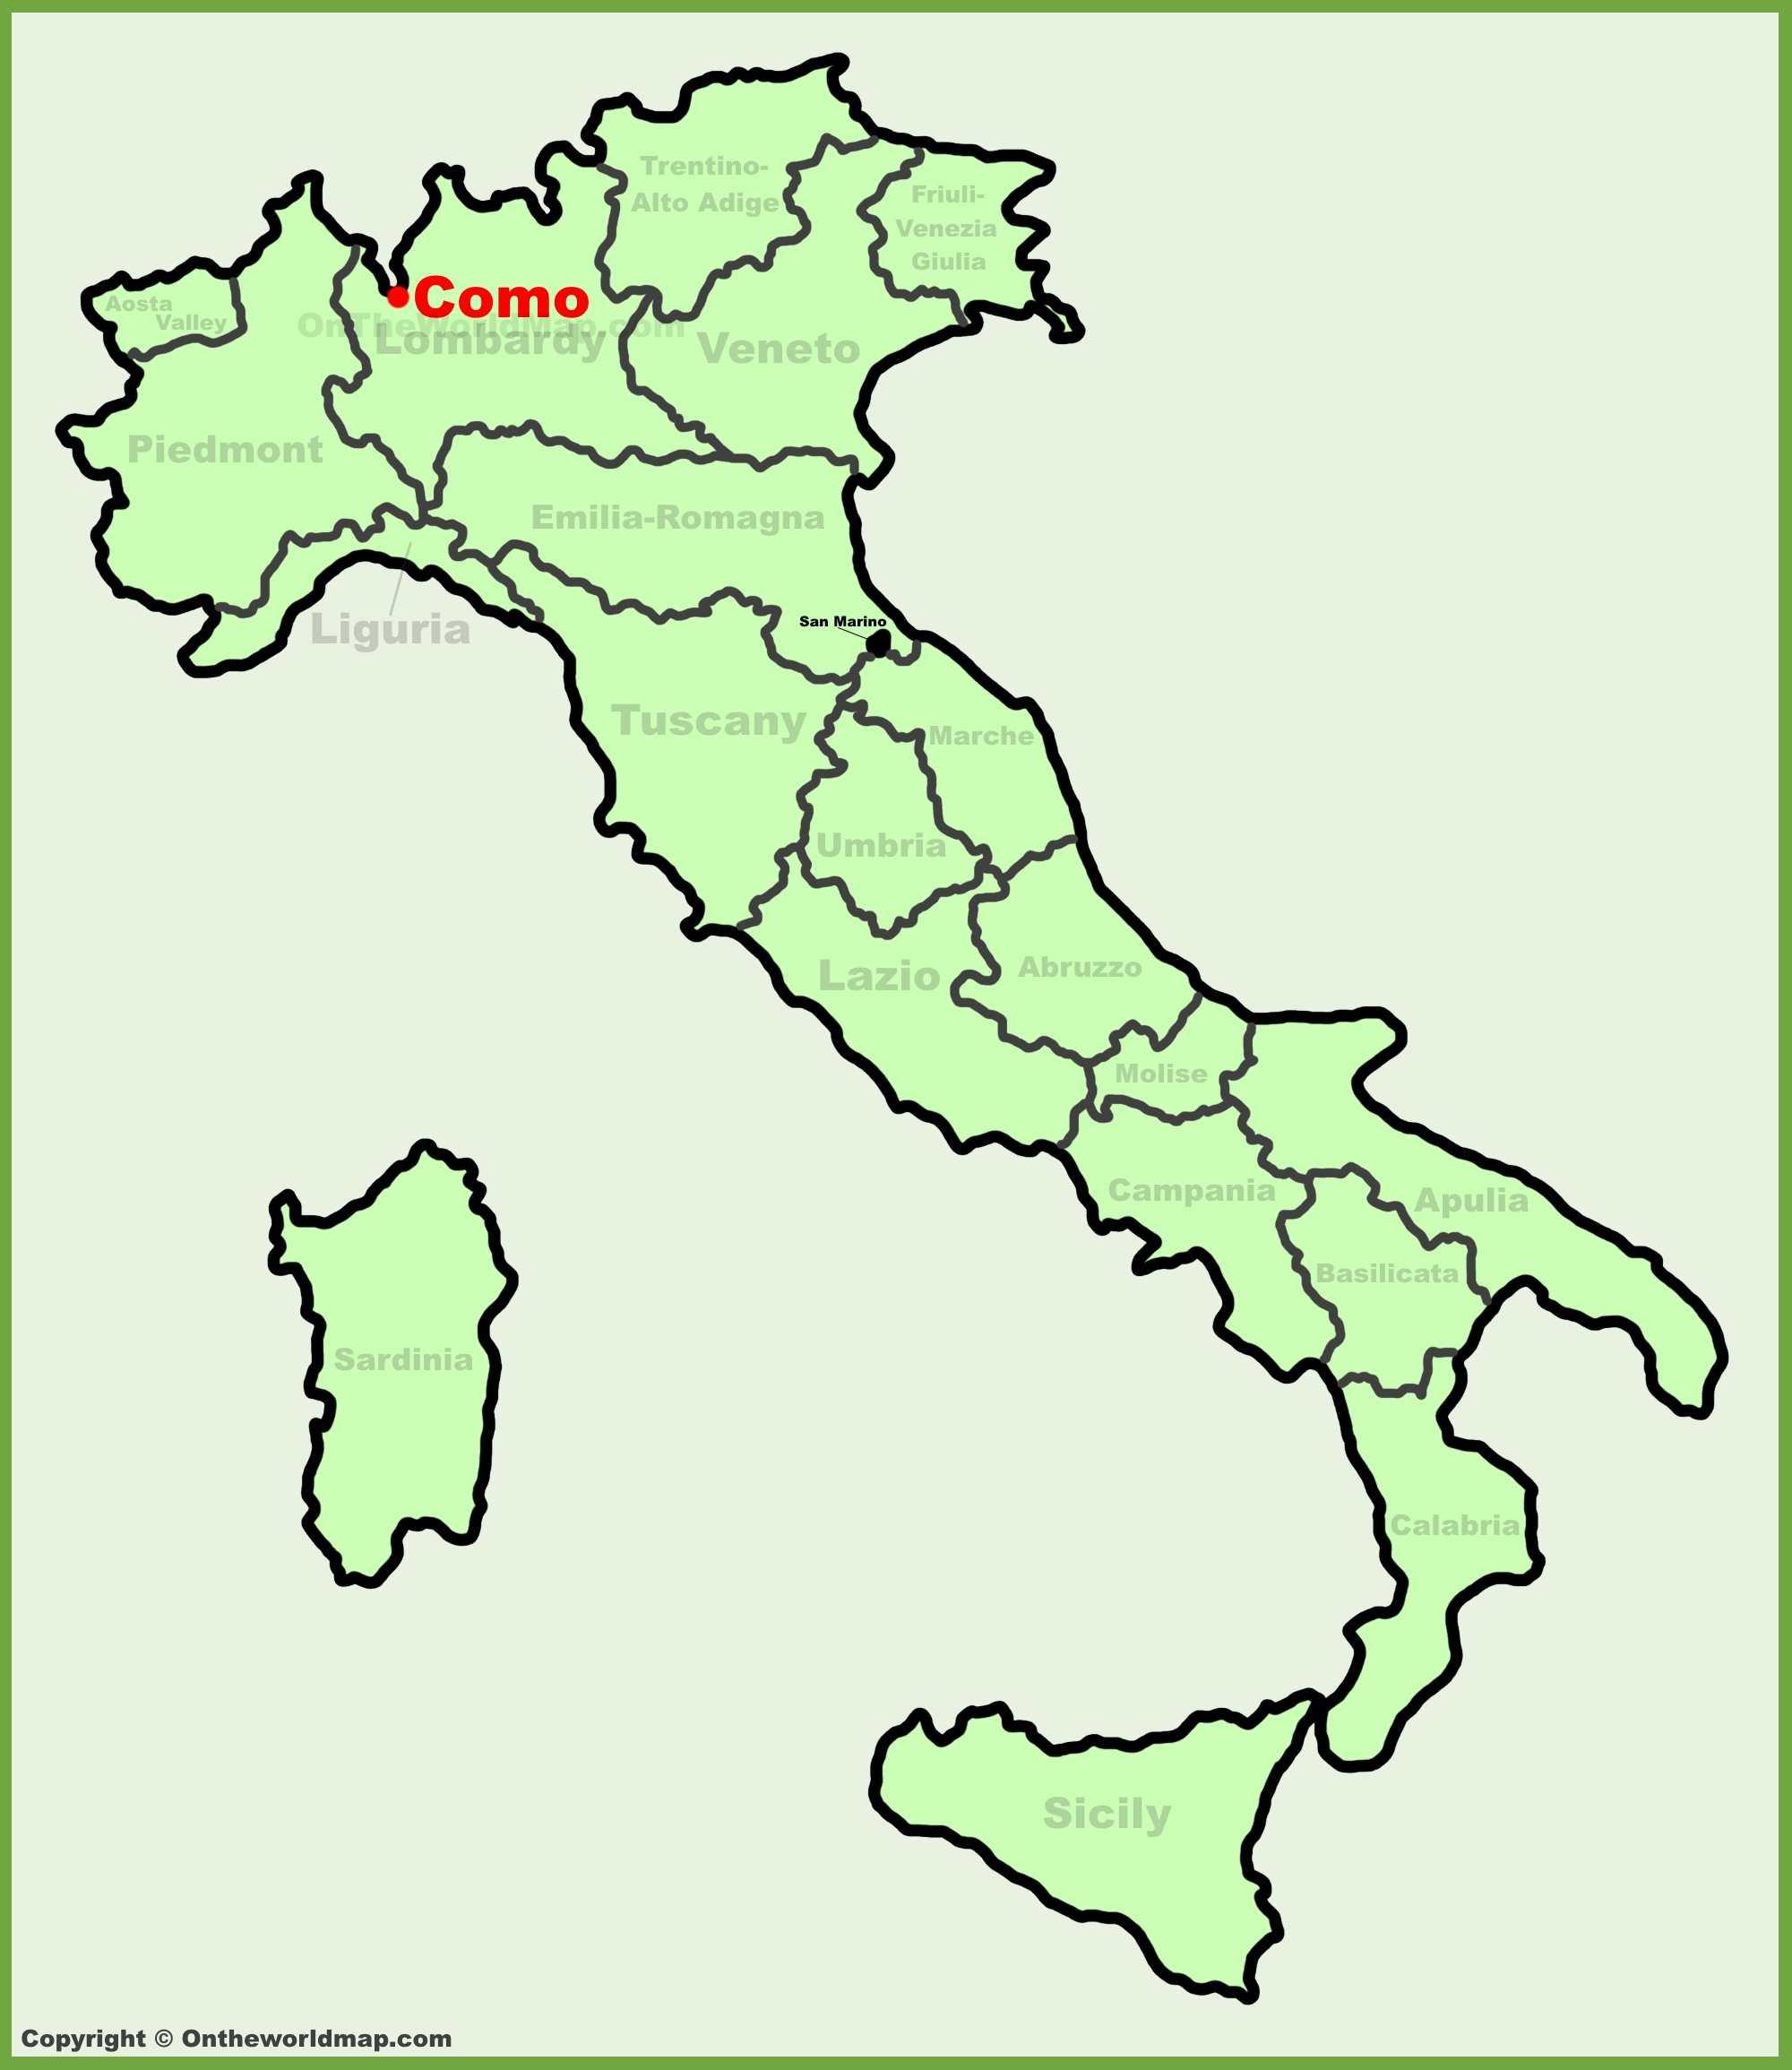 Como location on the Italy map